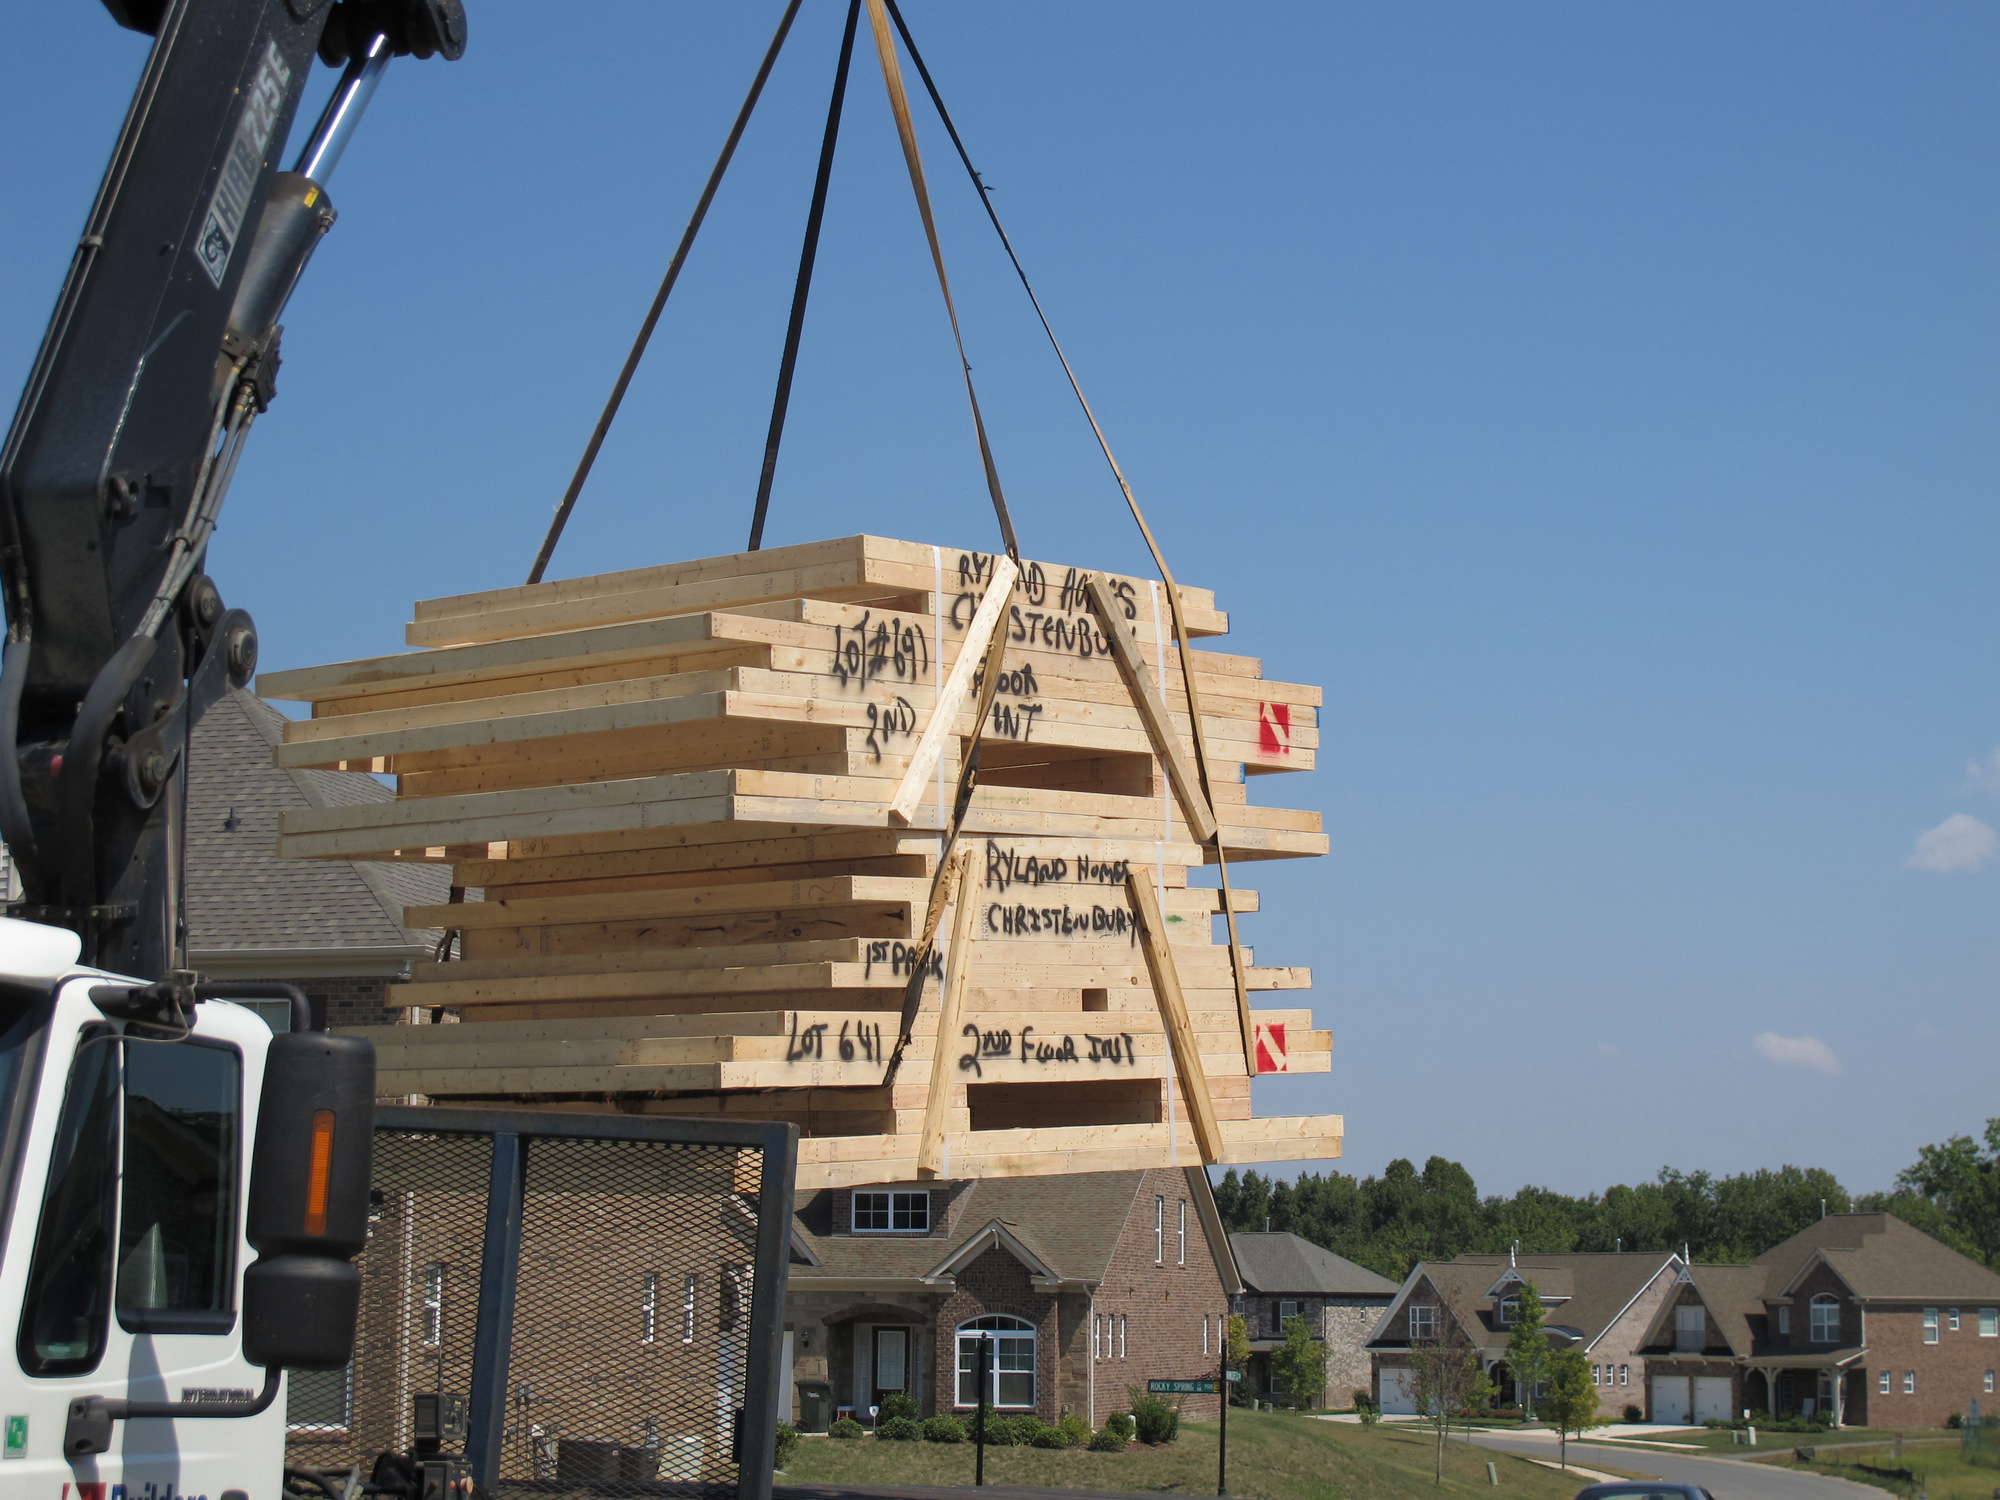 Wall Panelization vs. Stick Building Homes